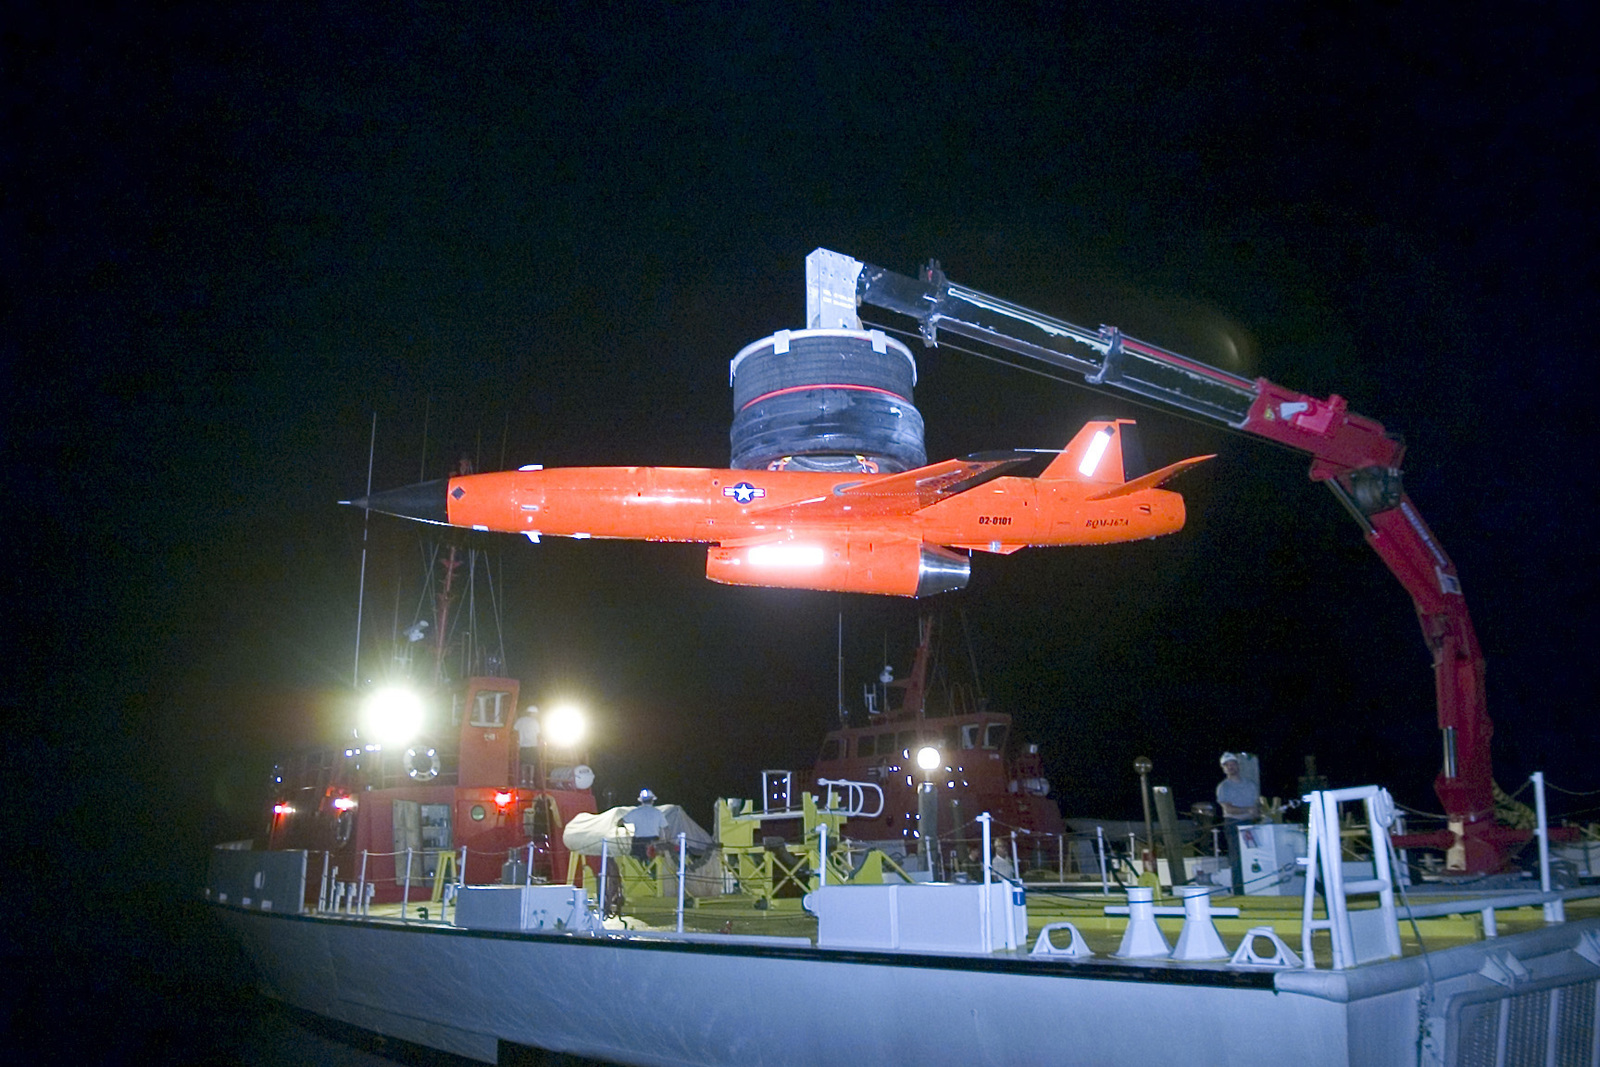 A U.S. Air Force BQM-167A Unmanned Aerial Vehicle (UAV) is recovered on a boat at